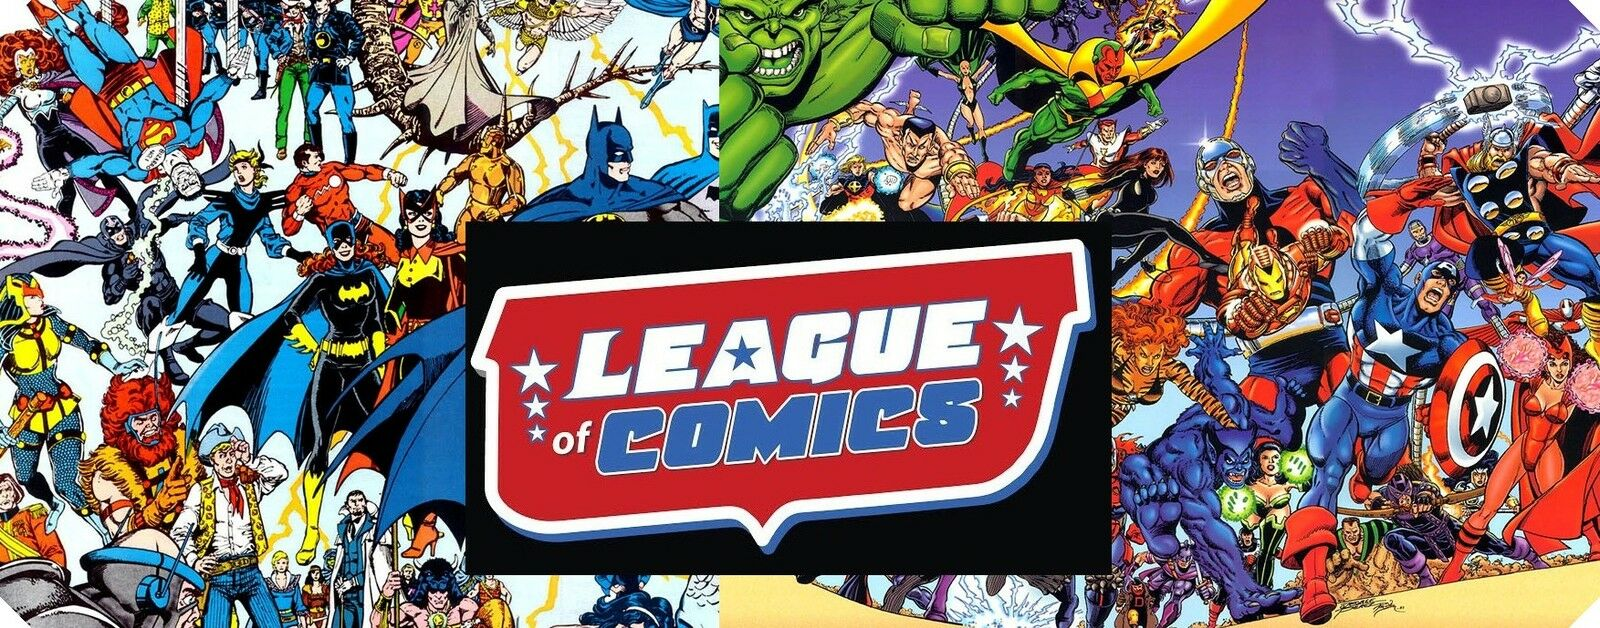 League of Comics